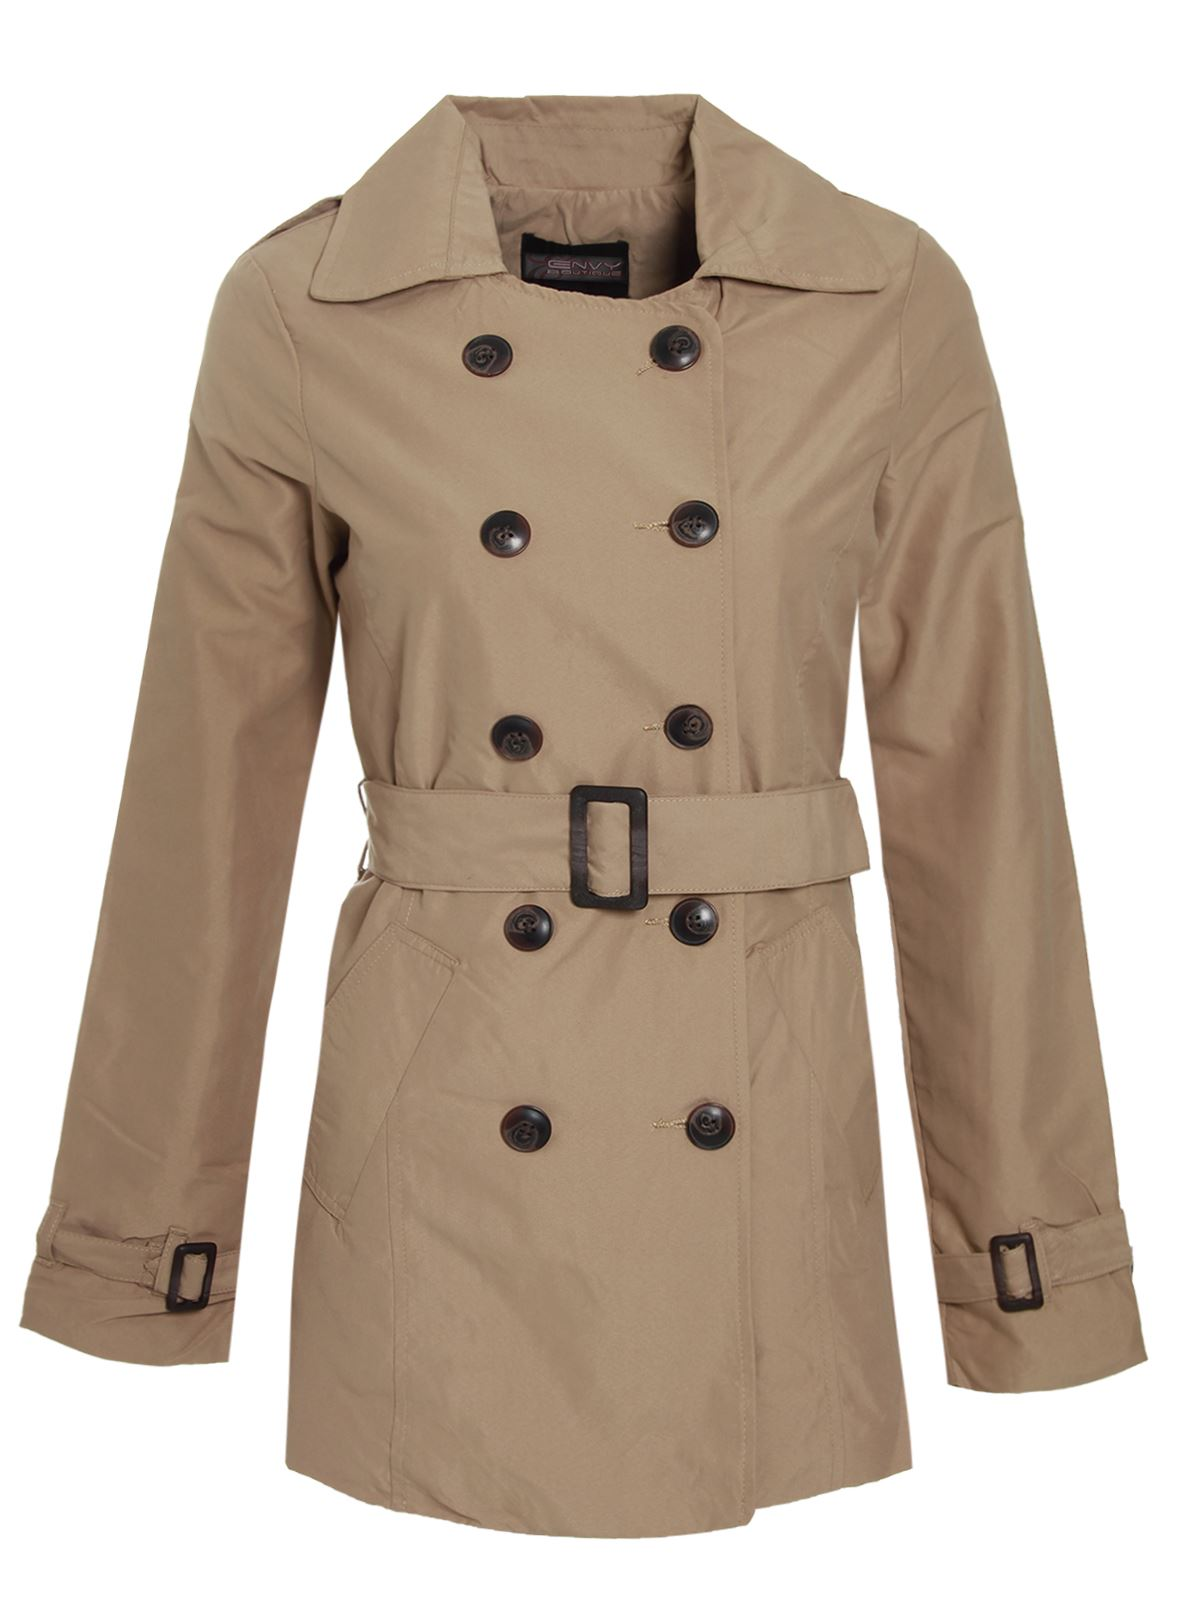 Ladies-Womens-Trench-Mac-Jacket-Double-Breasted-Buckle-Belted-Coat